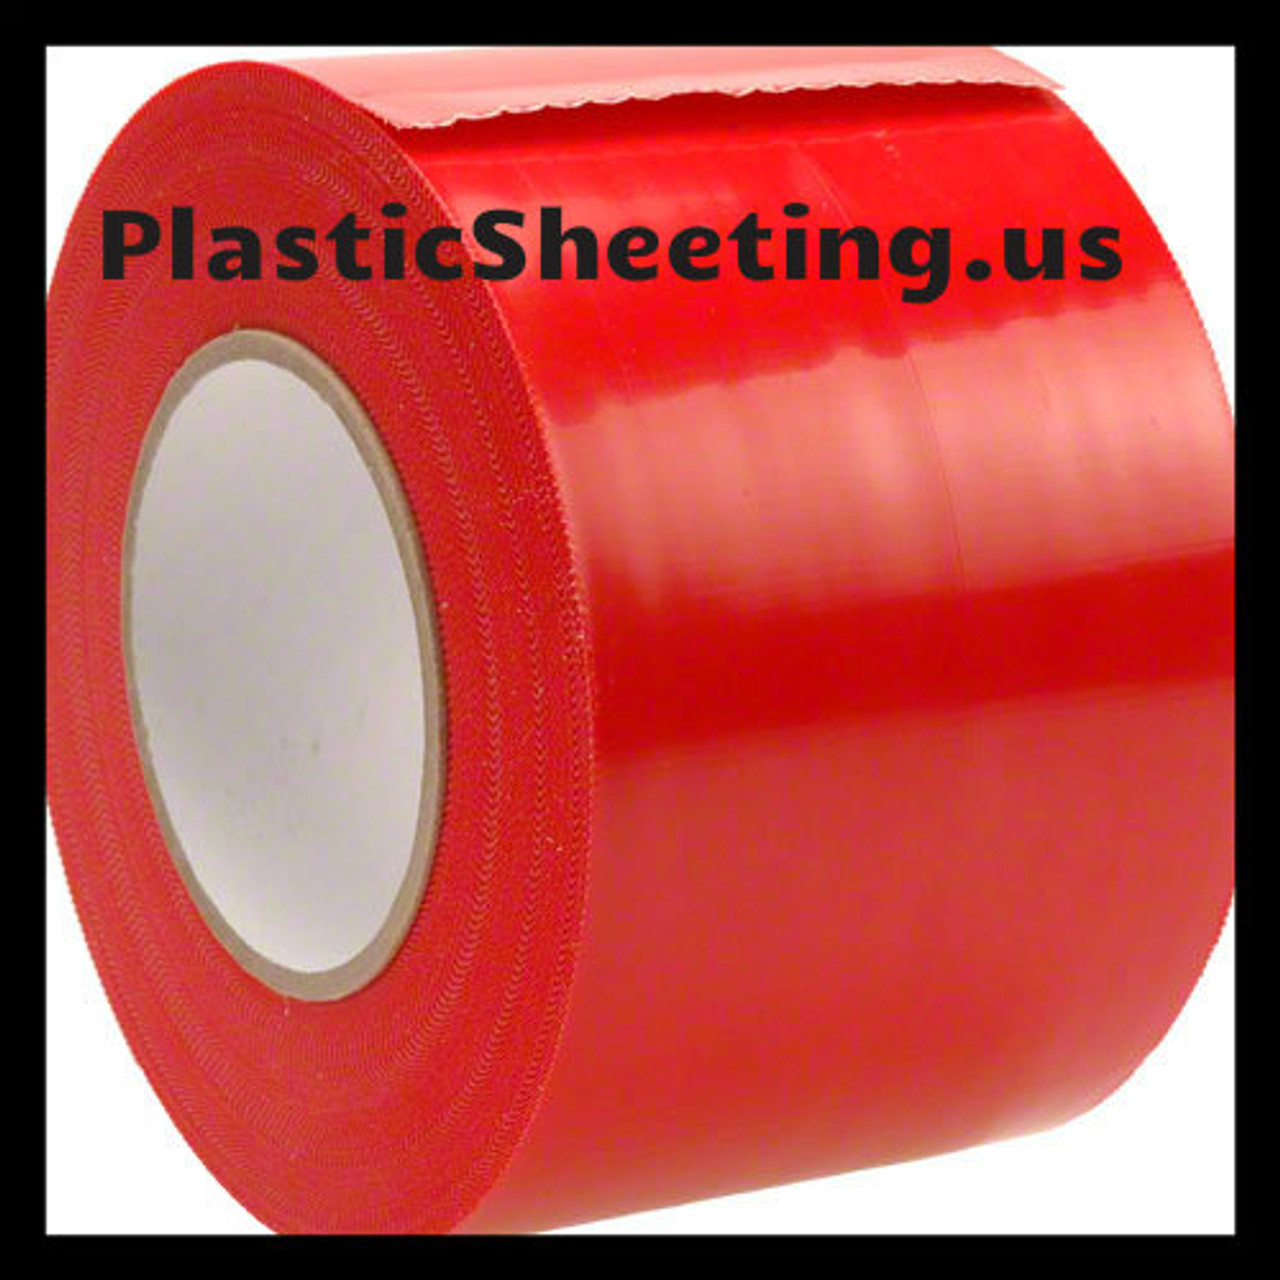 Plastic Sheeting Sealing Tape Yellow Guard Red 4